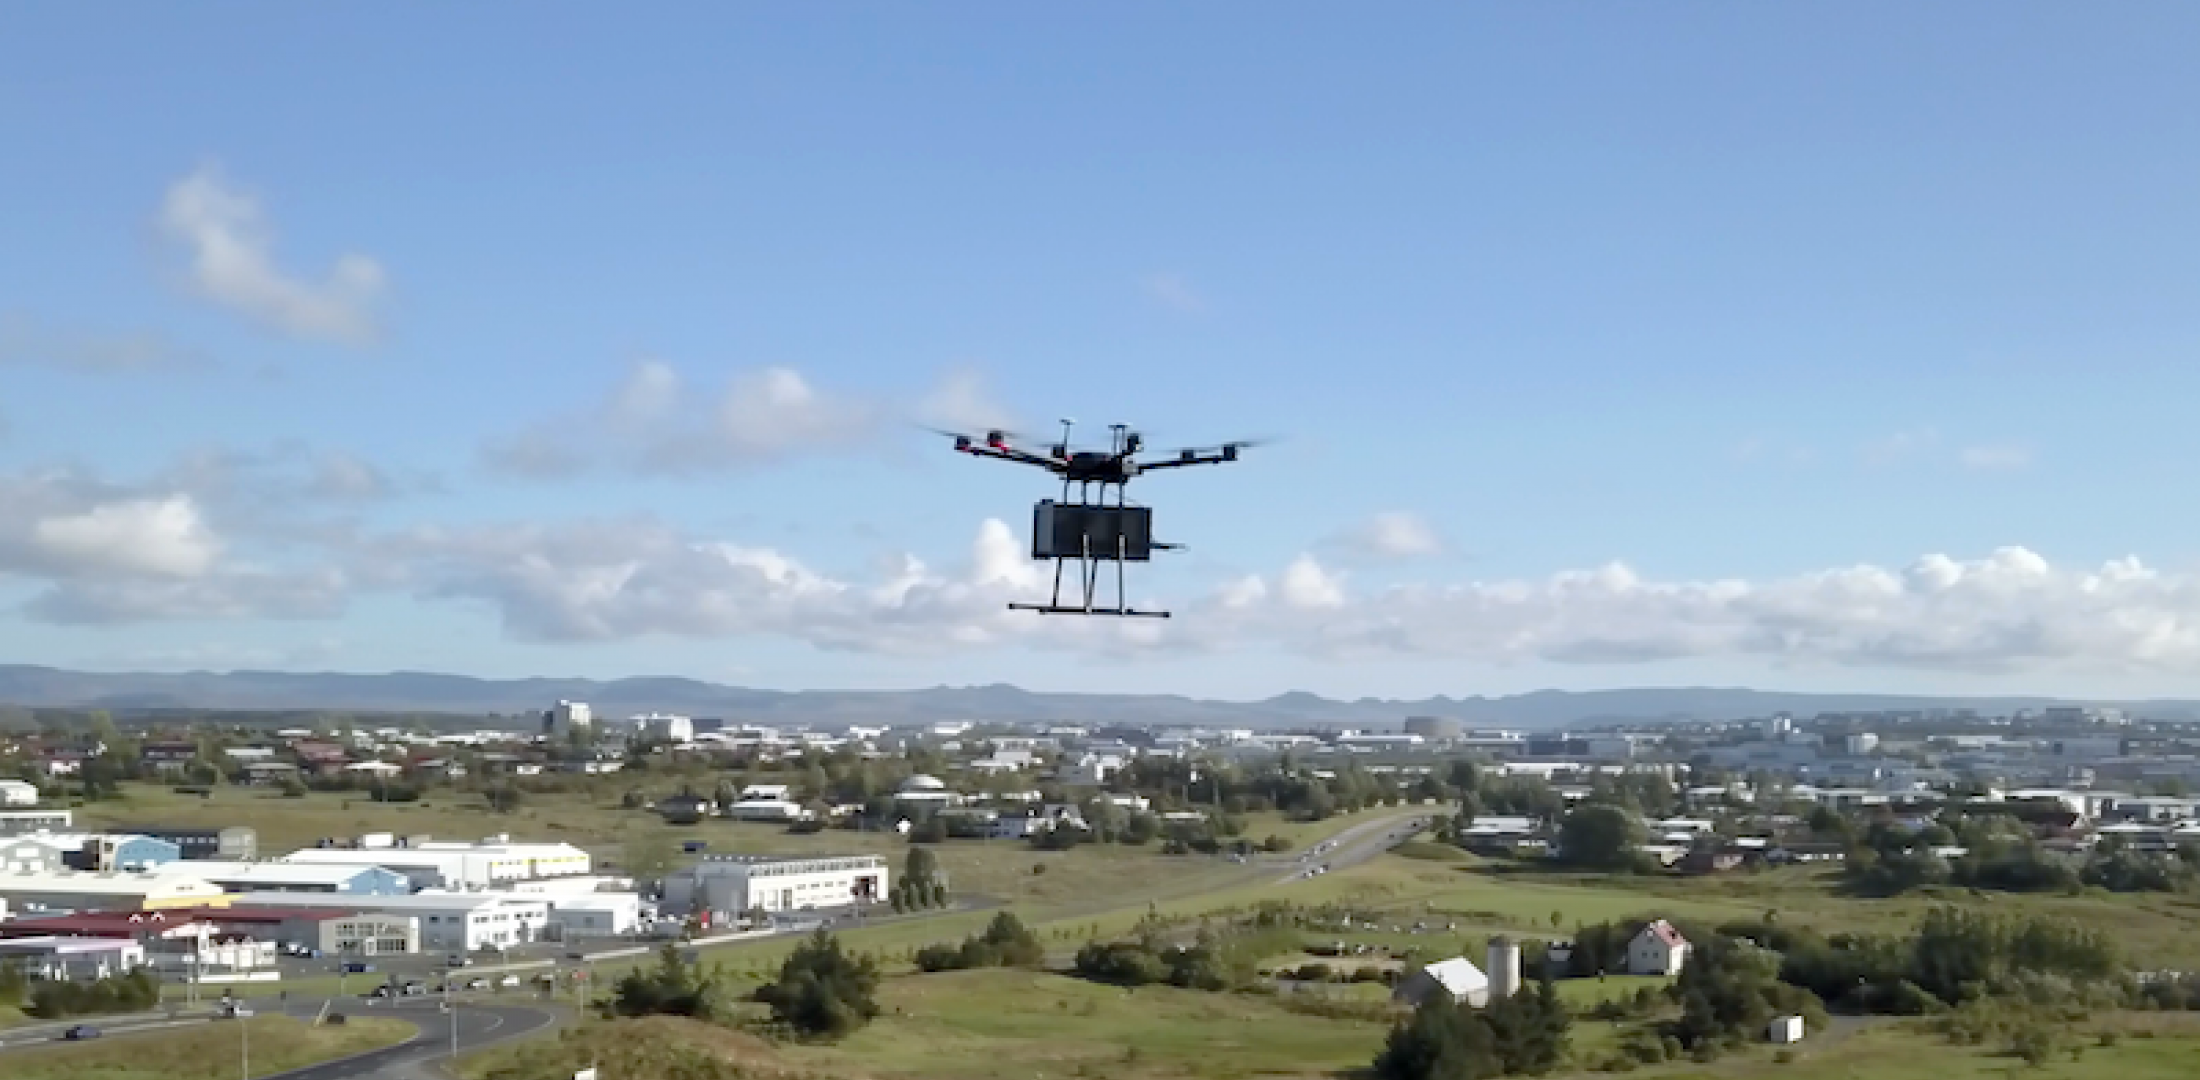 Flytrex has been conducting trial drone food deliveries in Iceland